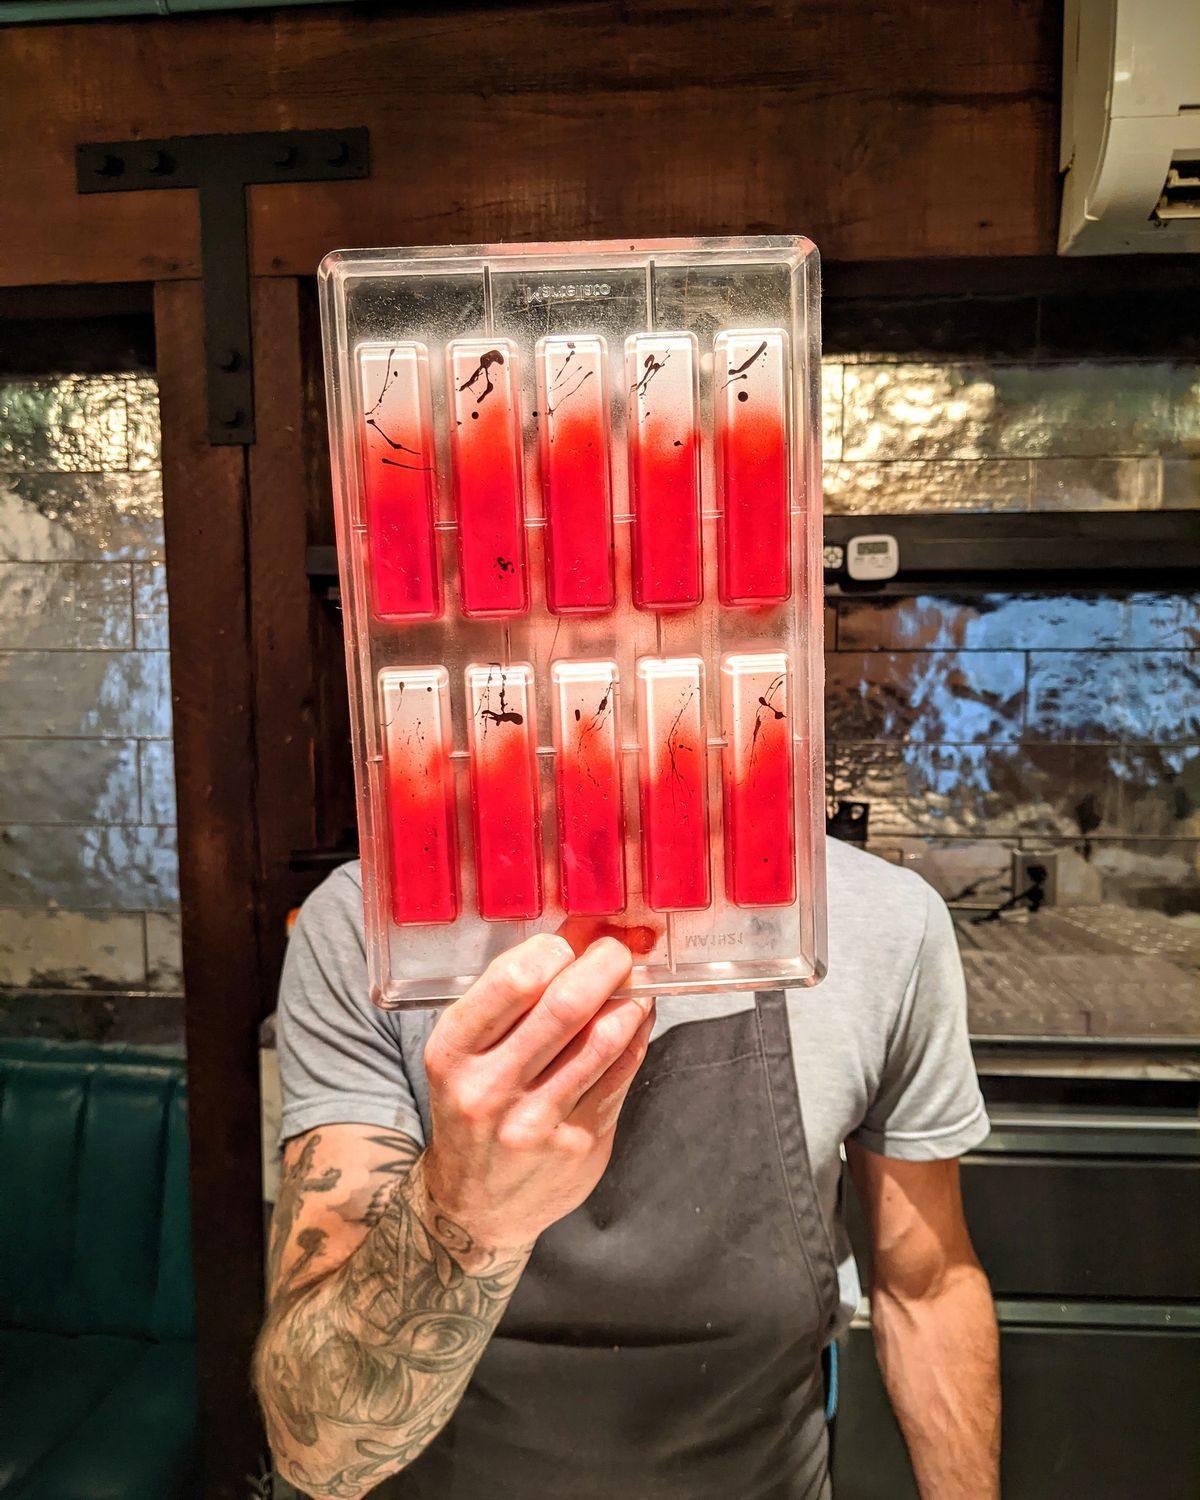 Simon Brown is holding a mold full of red and chocolate bars